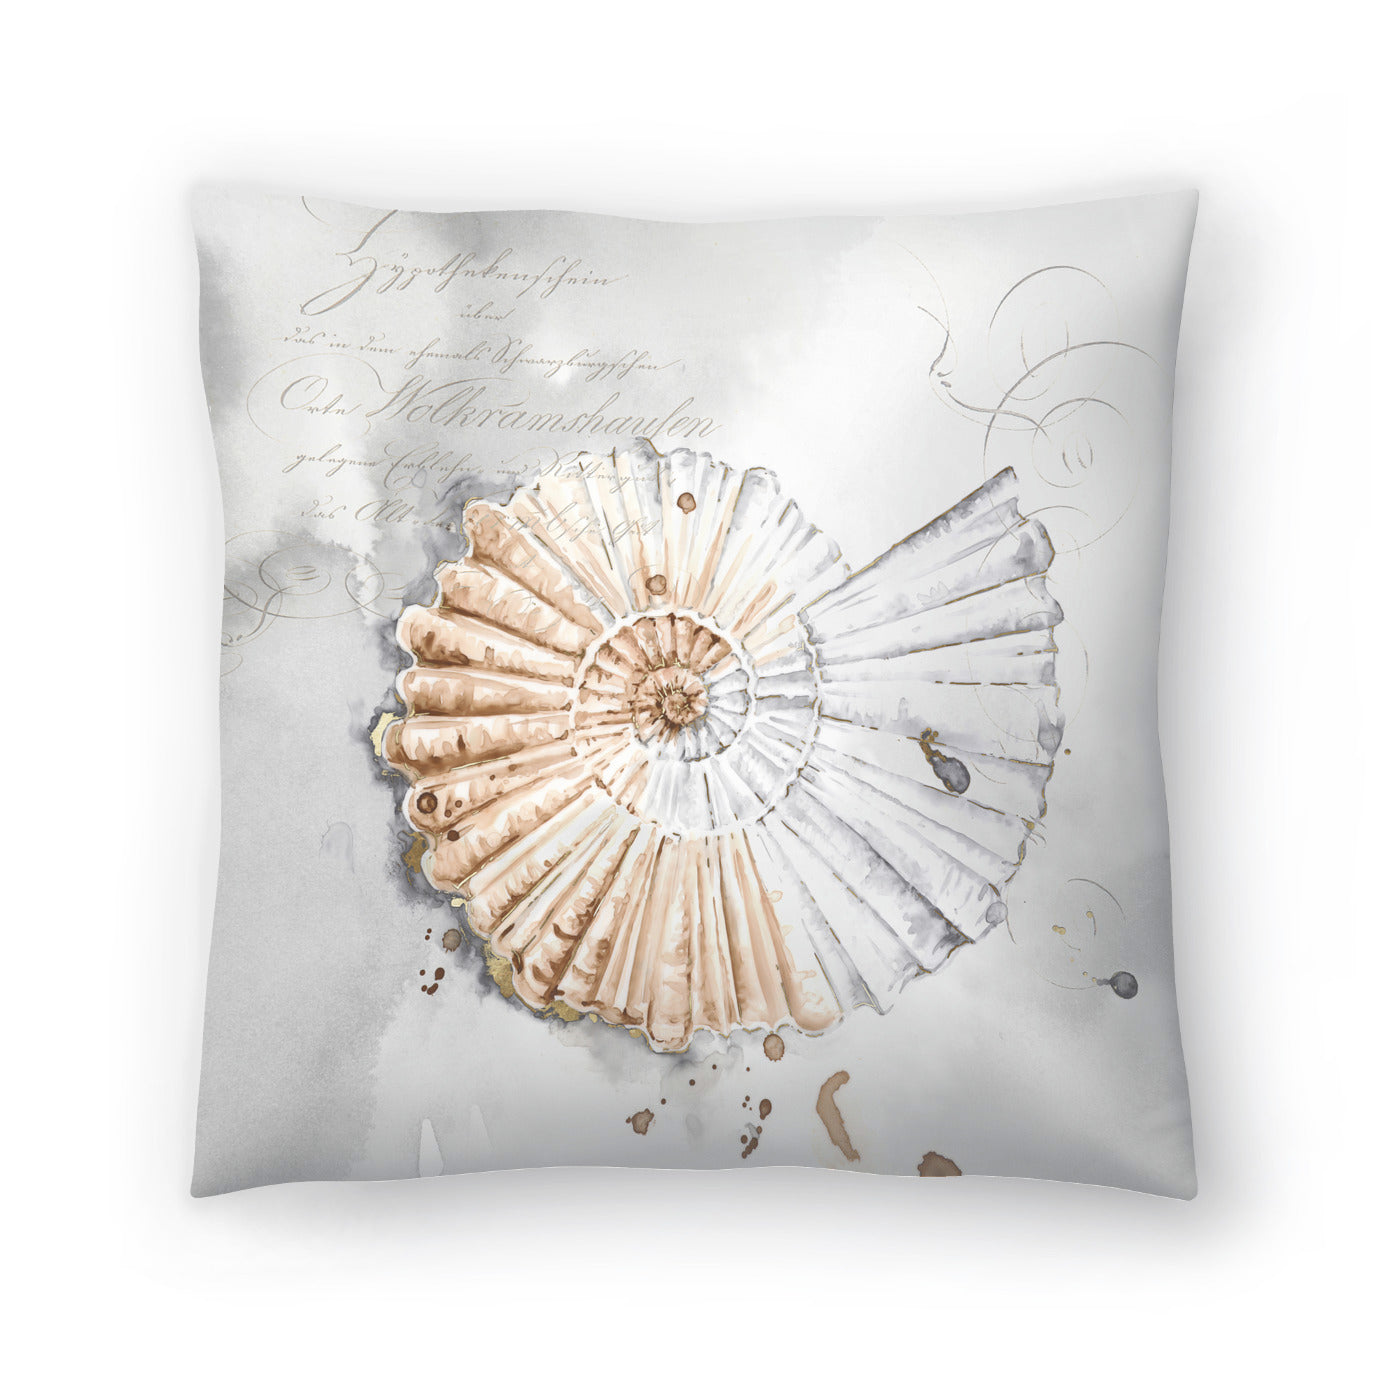 Blush Shell Ii by PI Creative Art Decorative Pillow - Decorative Pillow - Americanflat